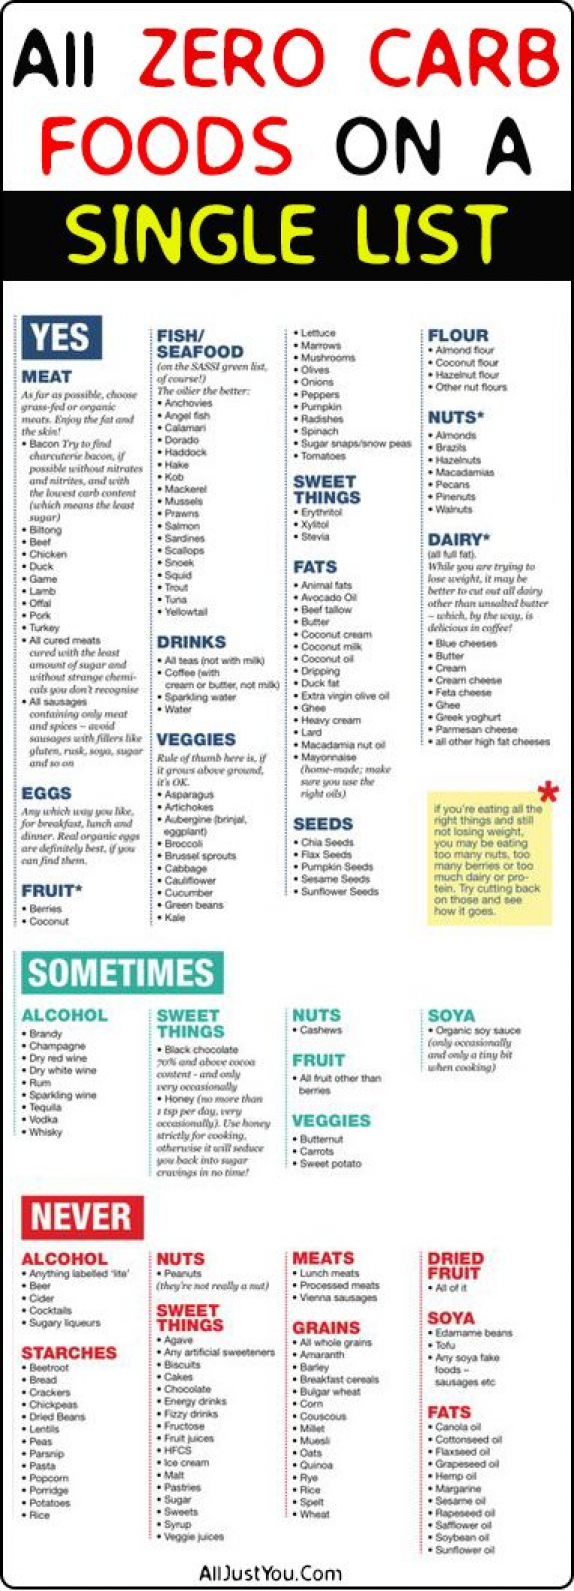 ULTIMATE LIST OF ZERO CARB FOODS FOR YOU #health #fitness #diy #foods #carb #beauty #2weekdiet